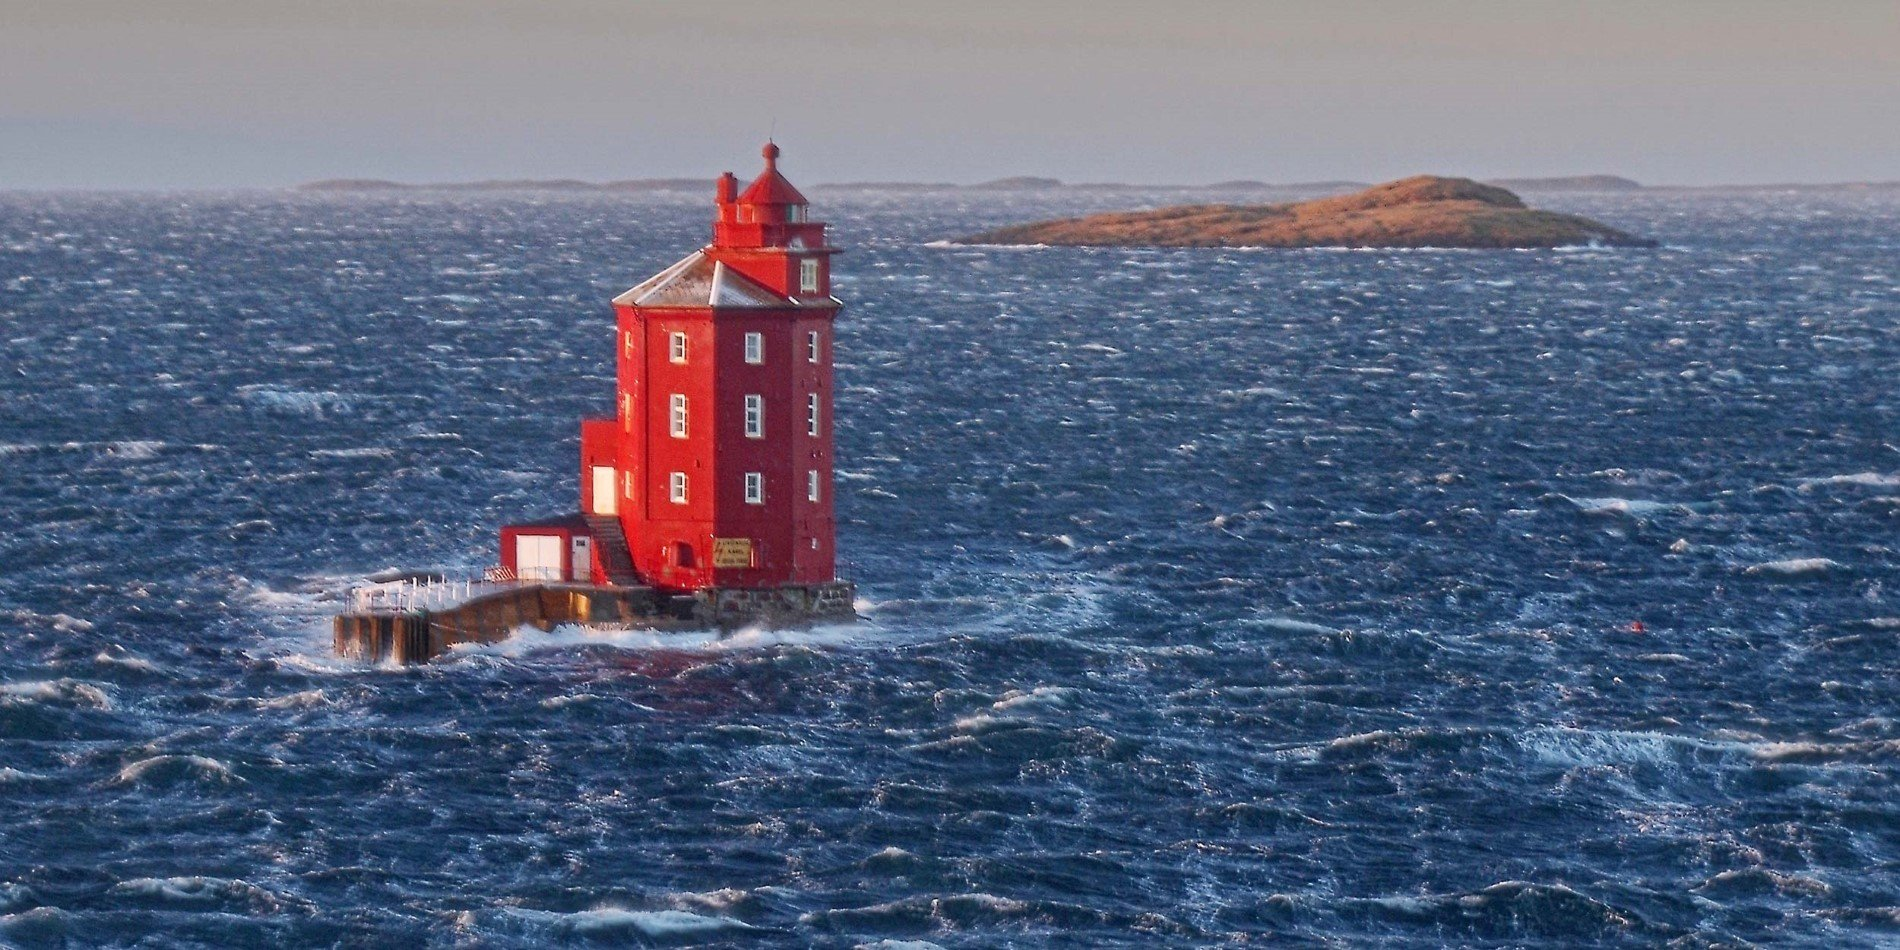 Kjeungskjær Lighthouse in rough weather